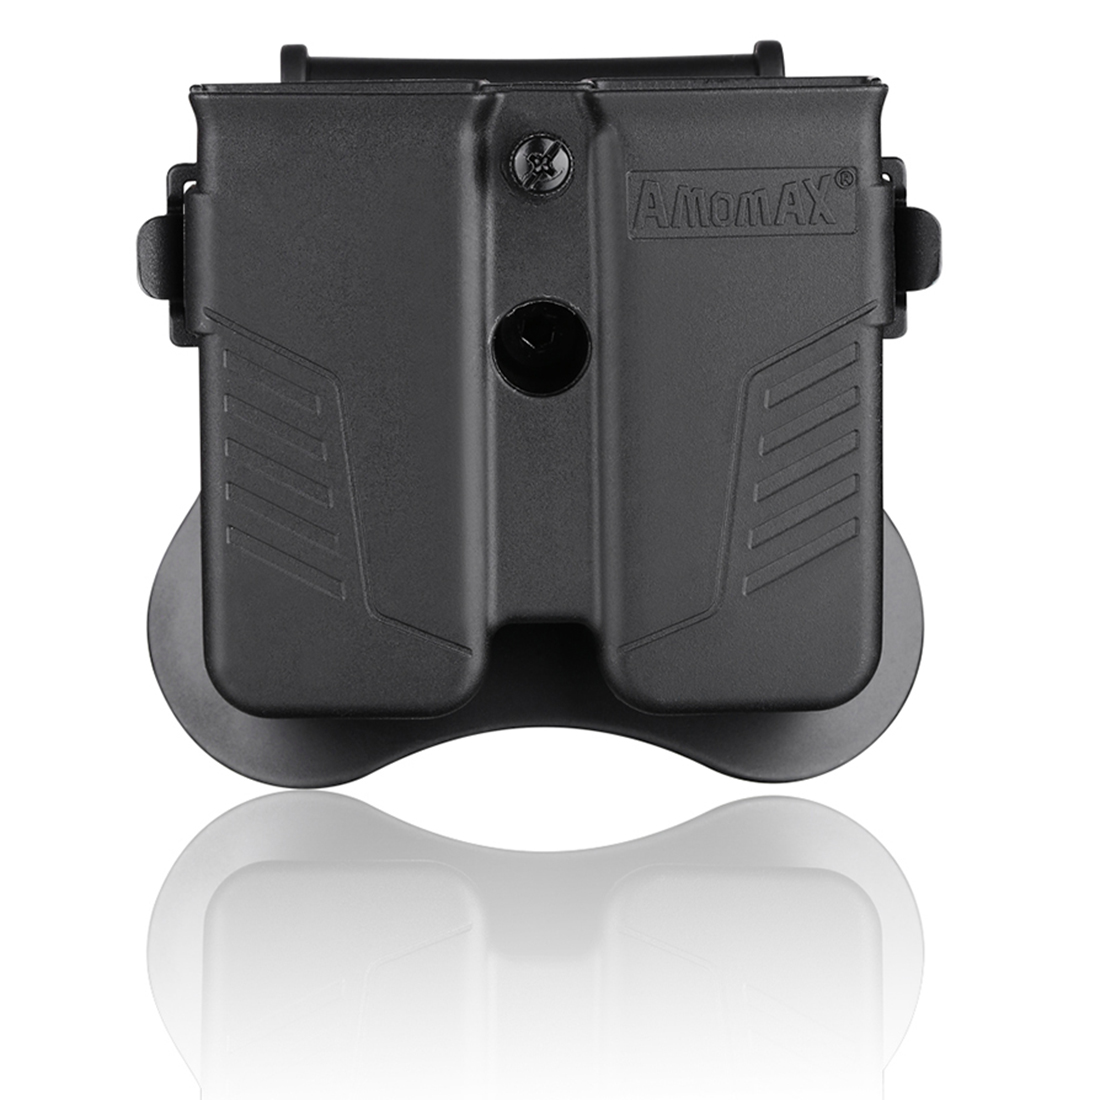 NFSTRIKE Amomax Tactical Double Magazine Pouch For Universal 9mm .40 .45 Caliber Single Double Stack Magazines - Black